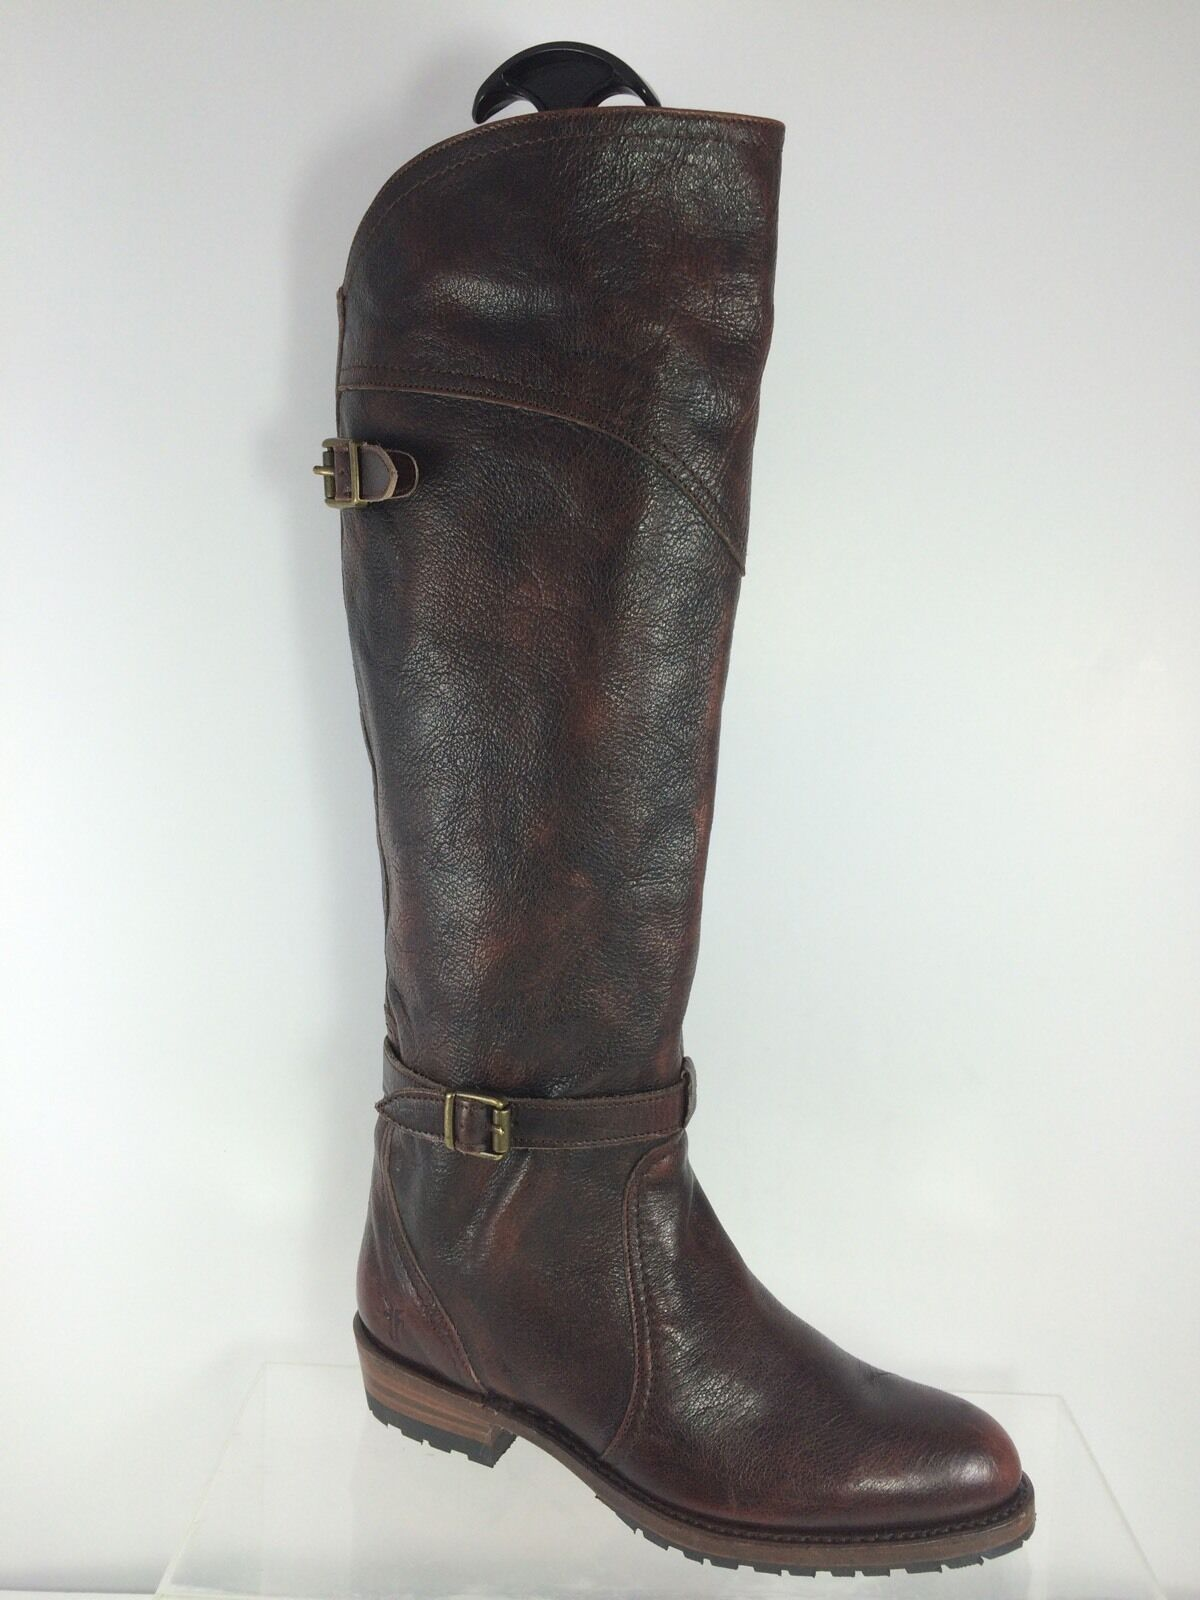 $597 Frye Women's Dark Brown Leather Riding Knee Boots 6